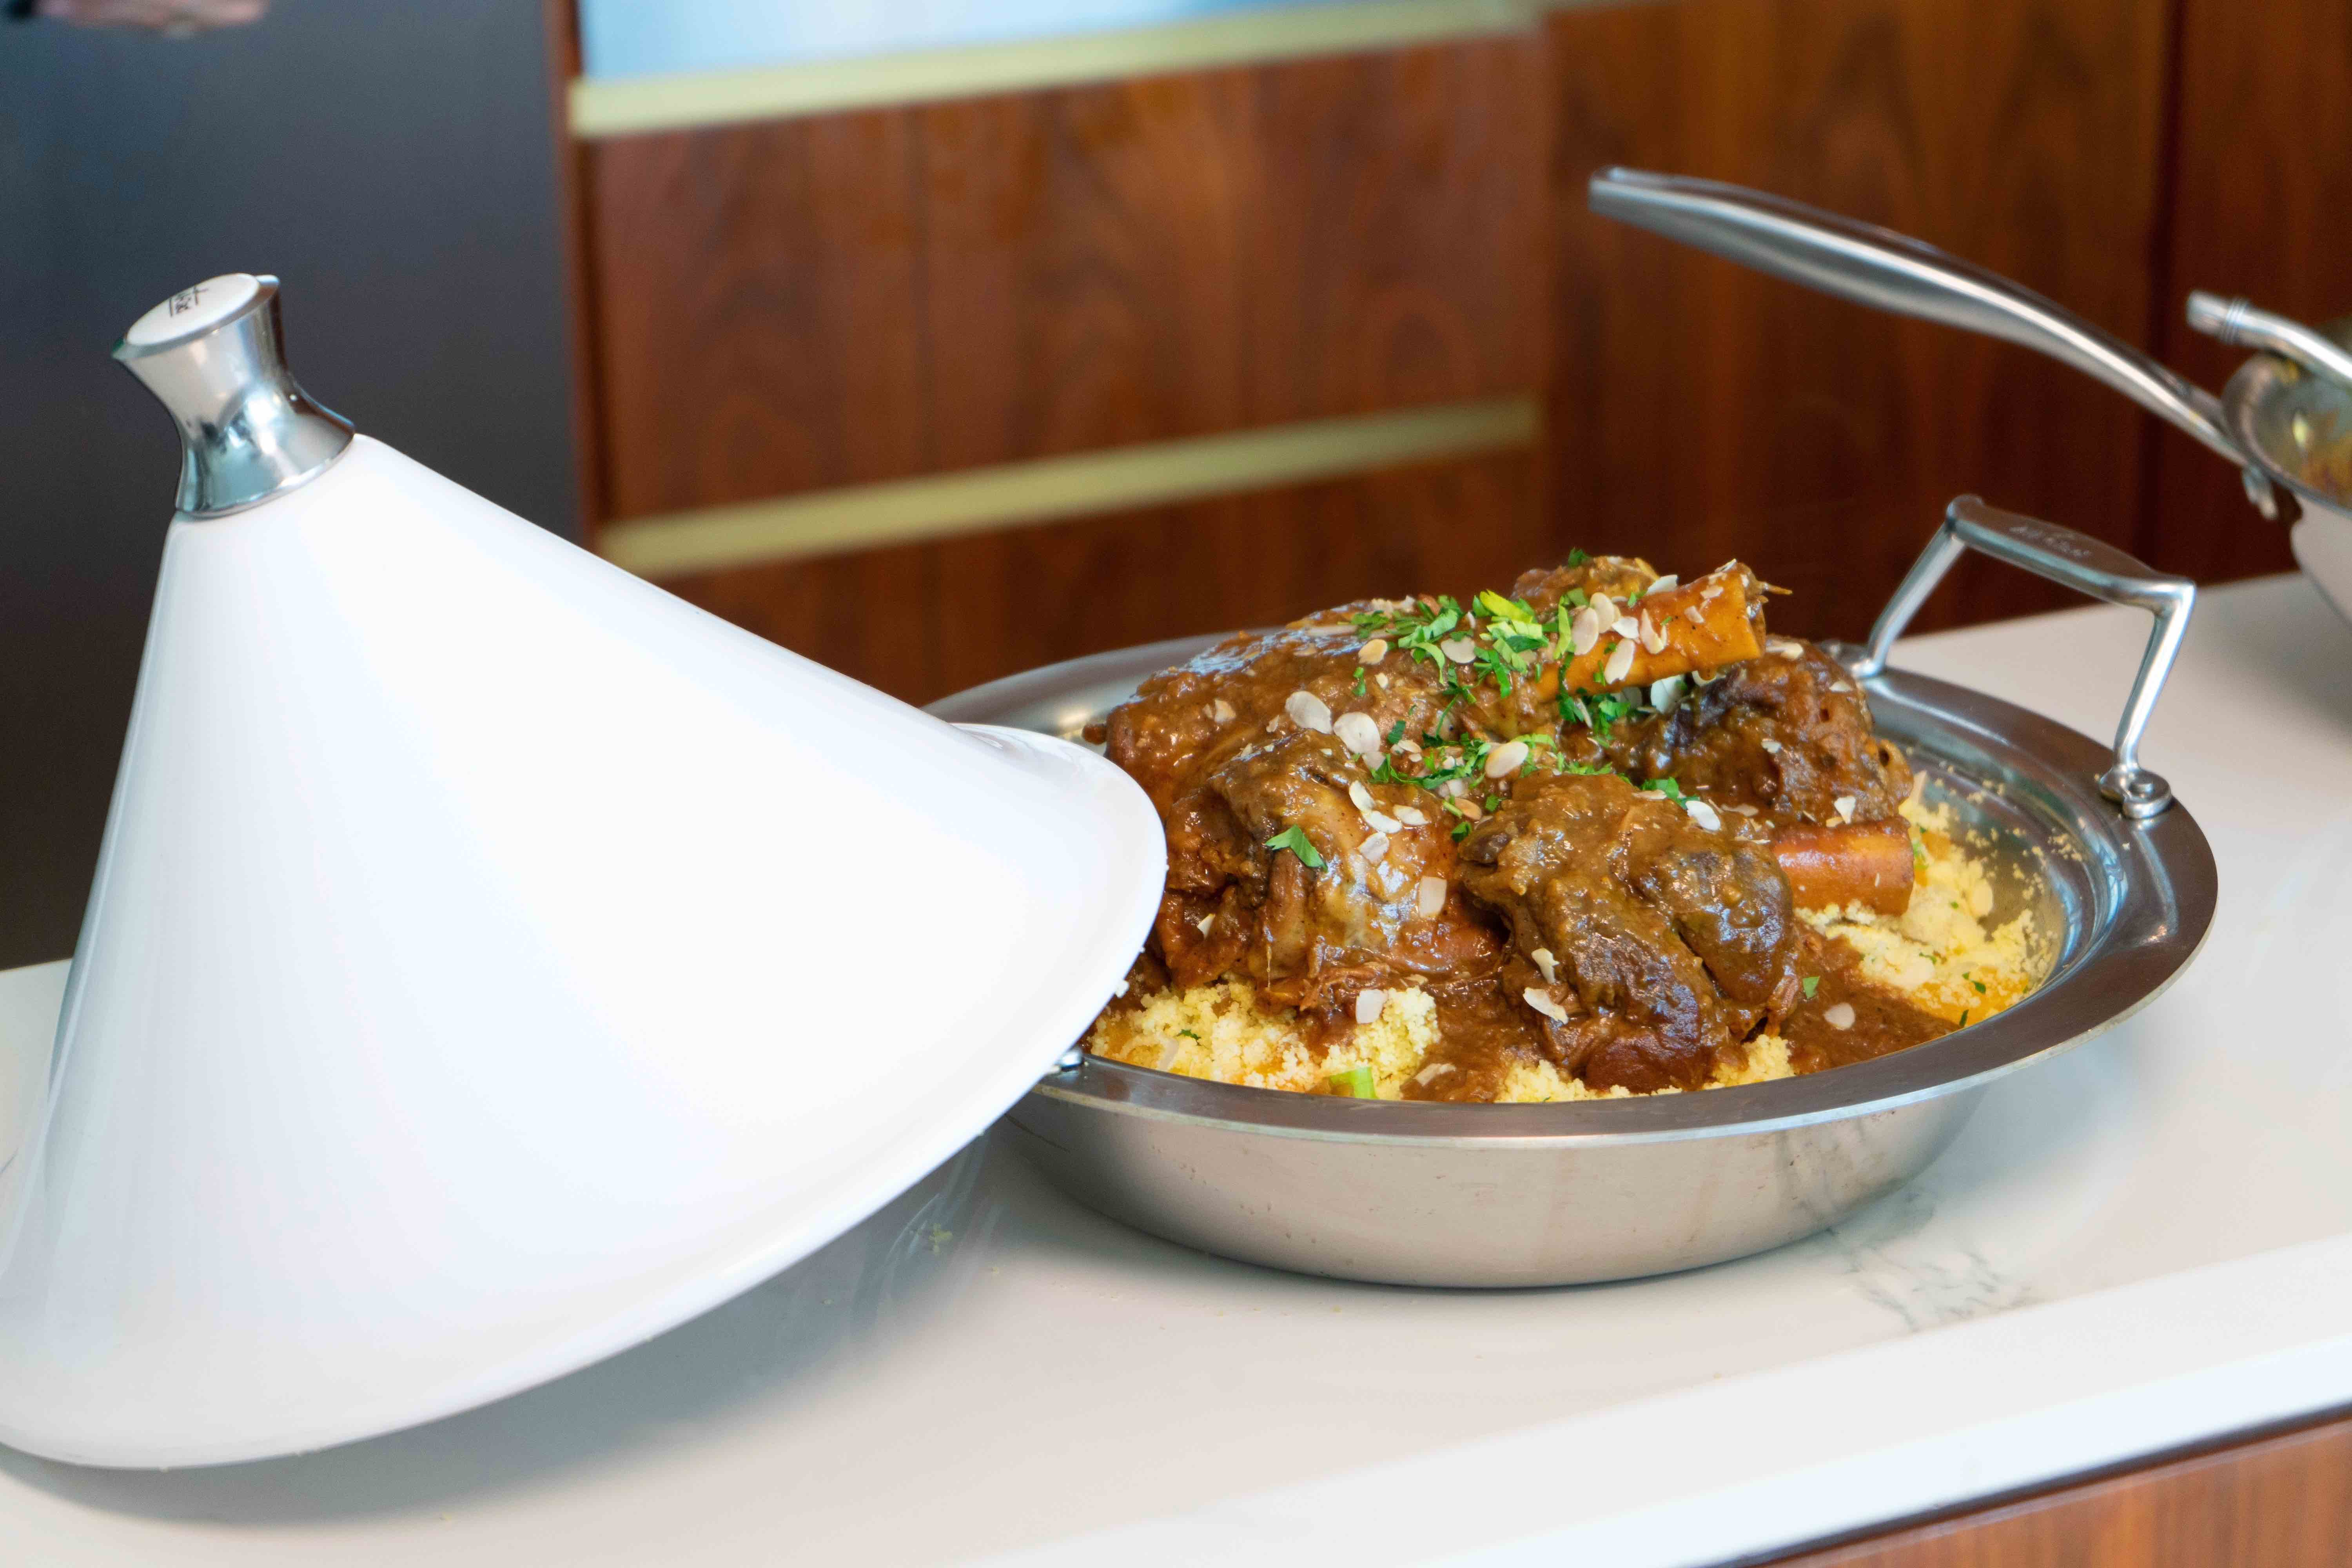 Spiced Lamb Shanks with Lentil Reduction and Almond Apricot Couscous